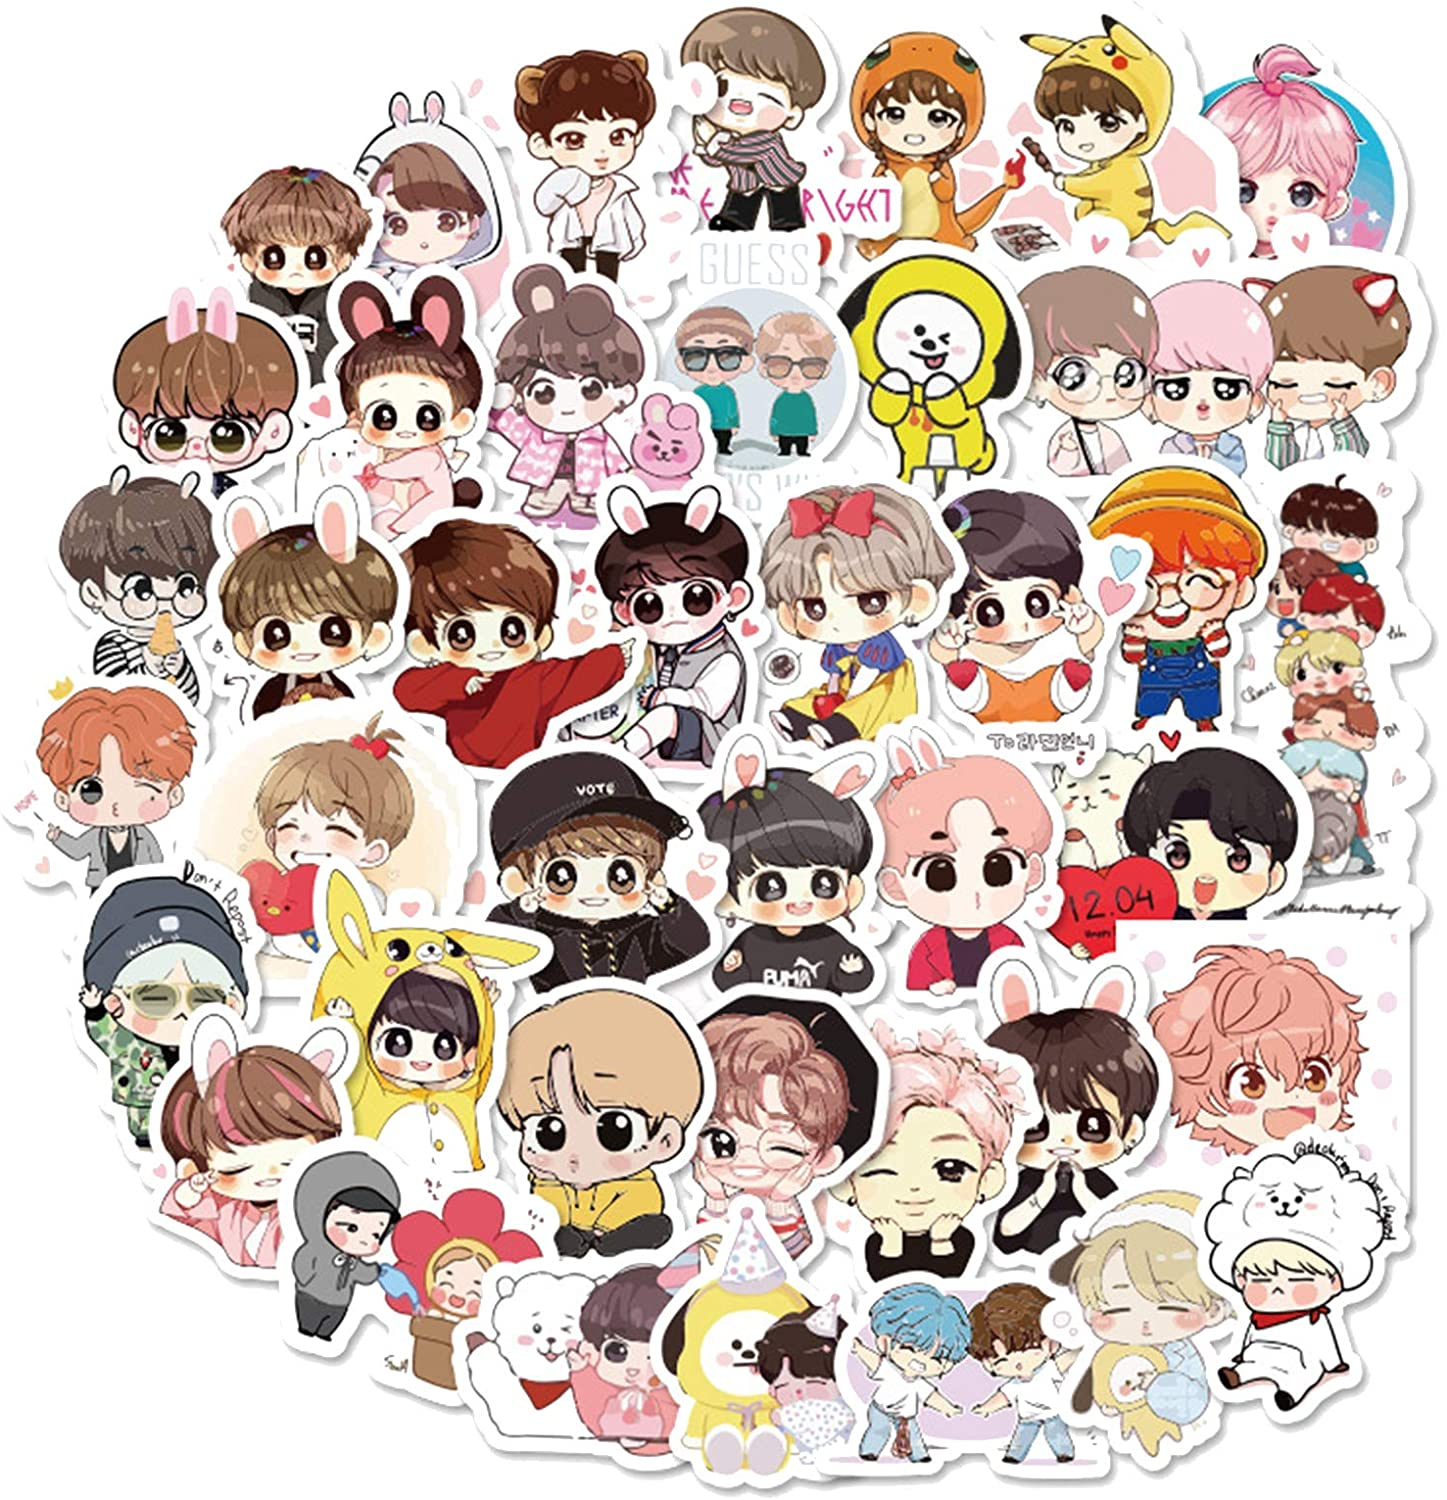 BTS Stickers 40pcs Decals for Laptops Water Bottles Toys and Gifts Cars Stickers Cartoon Anime Aesthetic Sticker Pack for Teens, Girls, Women(Cute BTS)